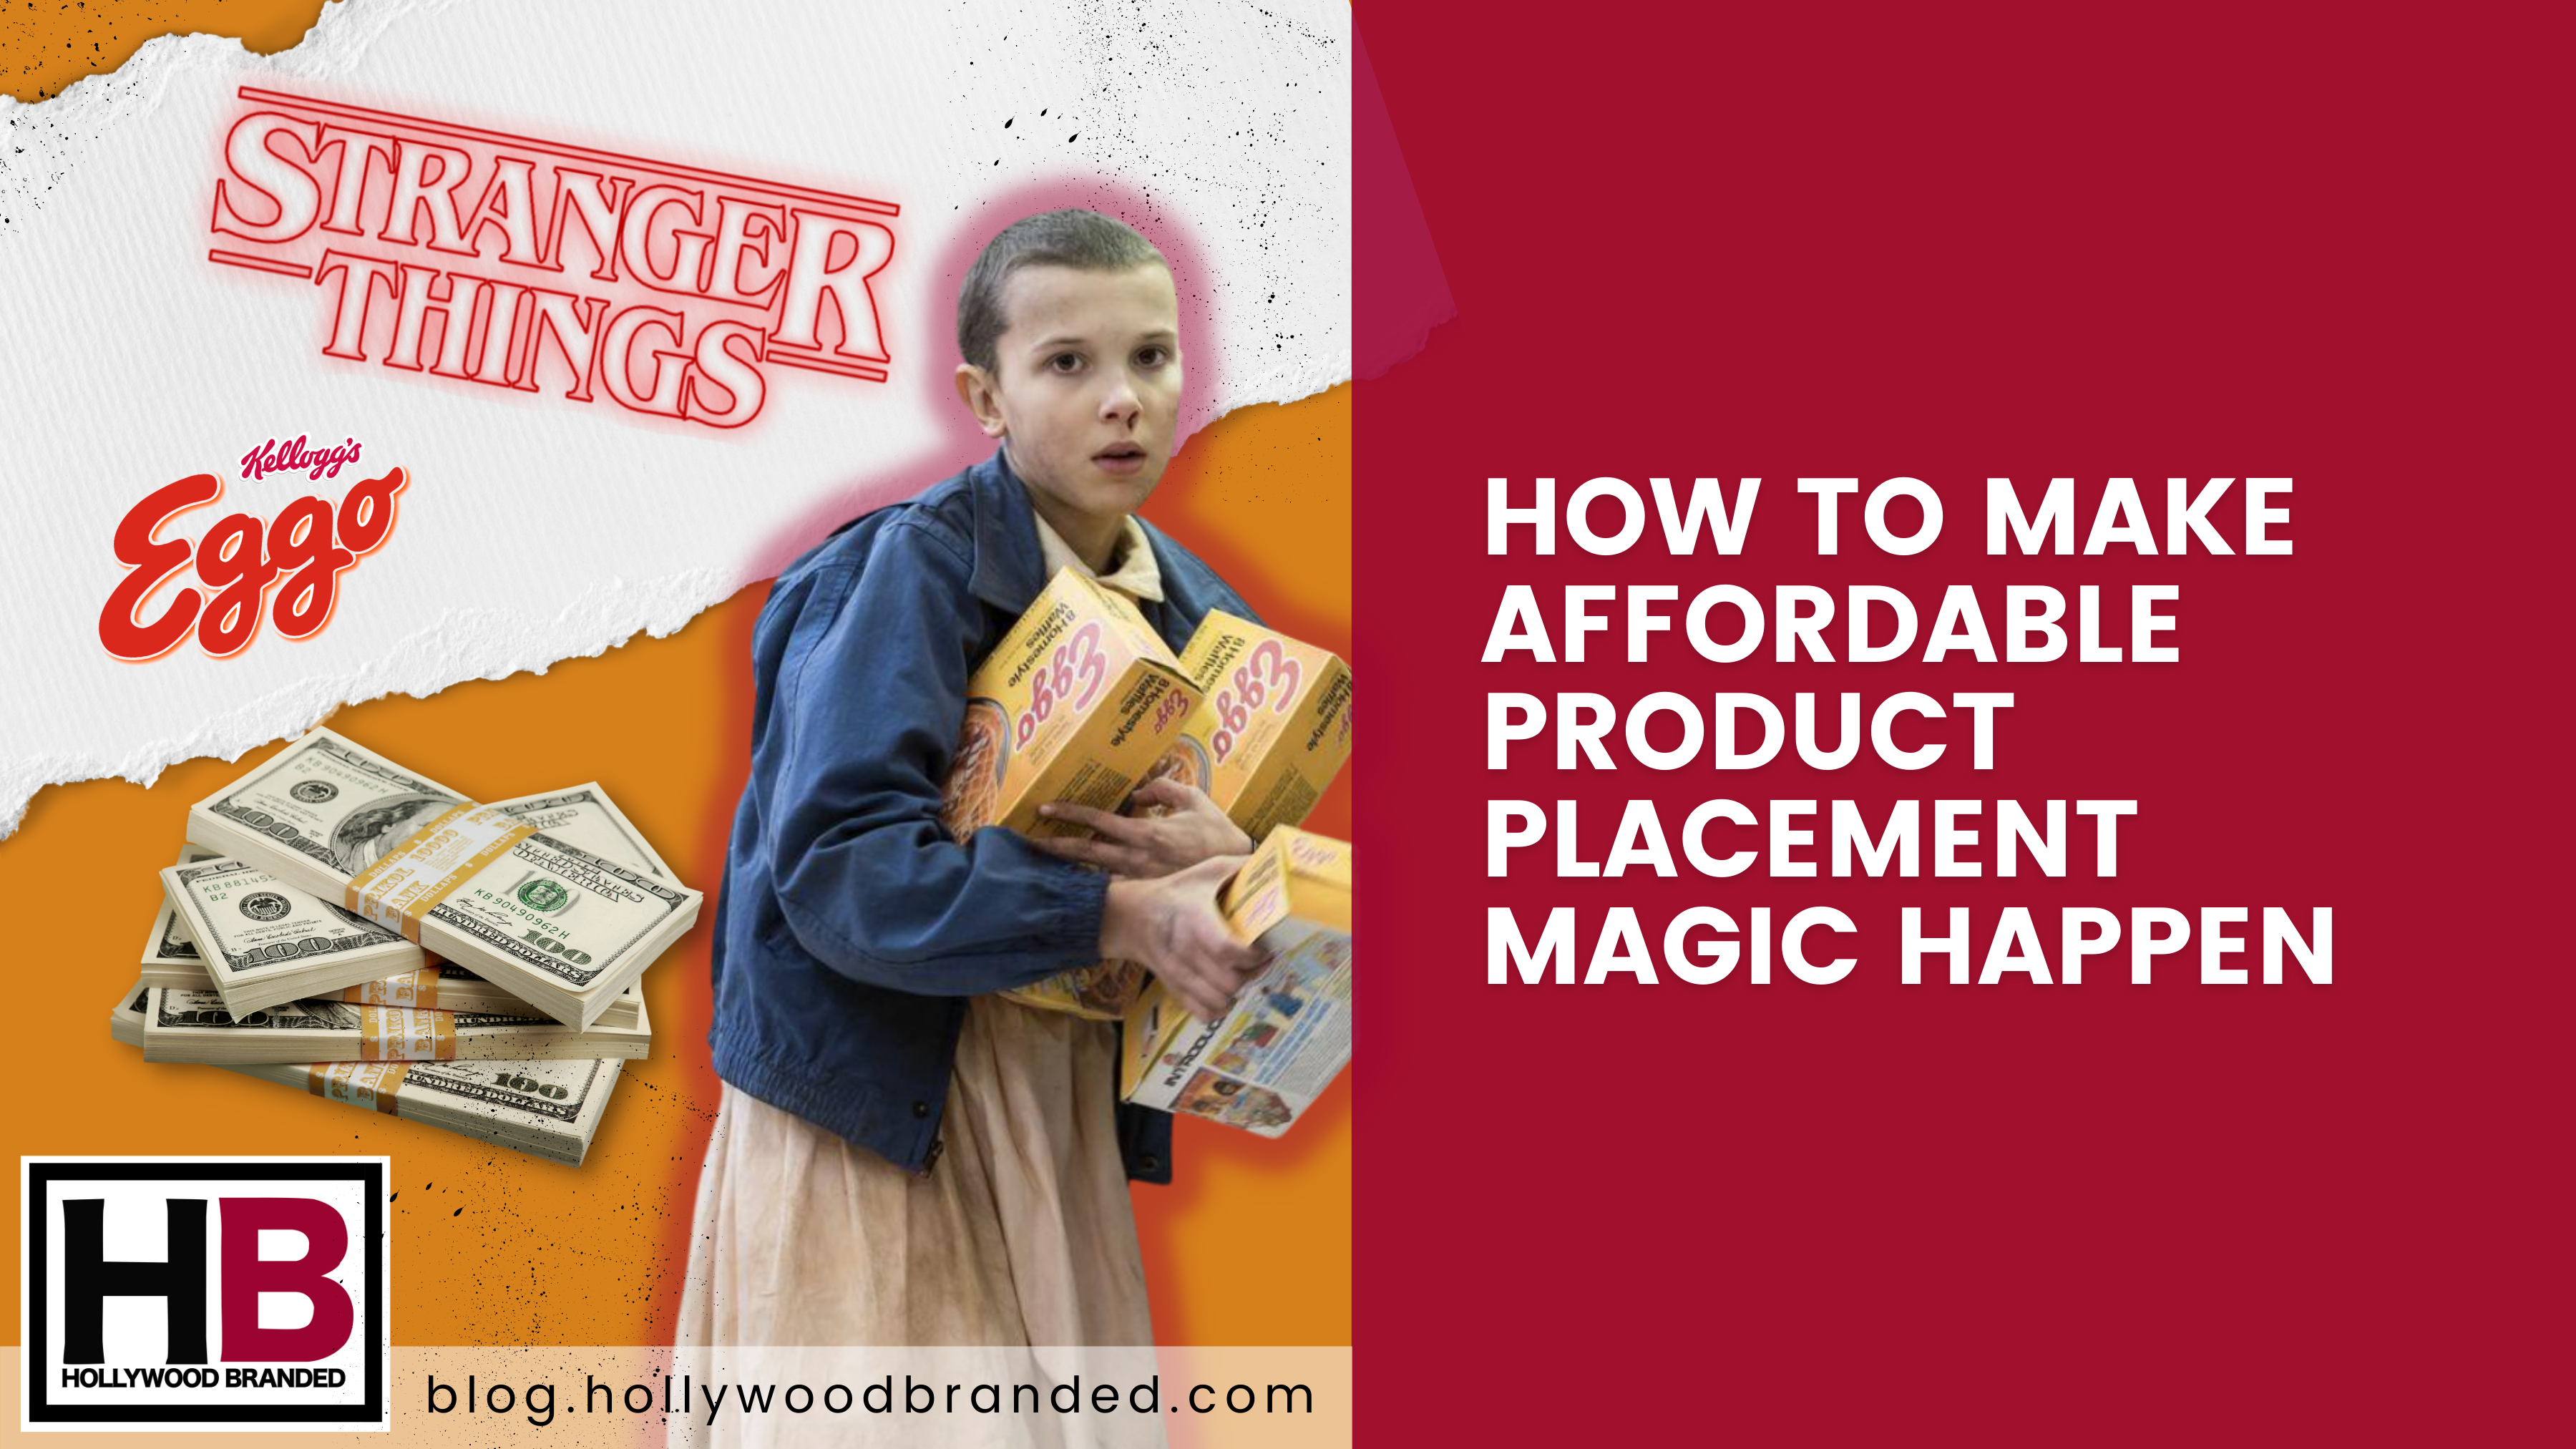 How To Make Affordable Product Placement Magic Happen